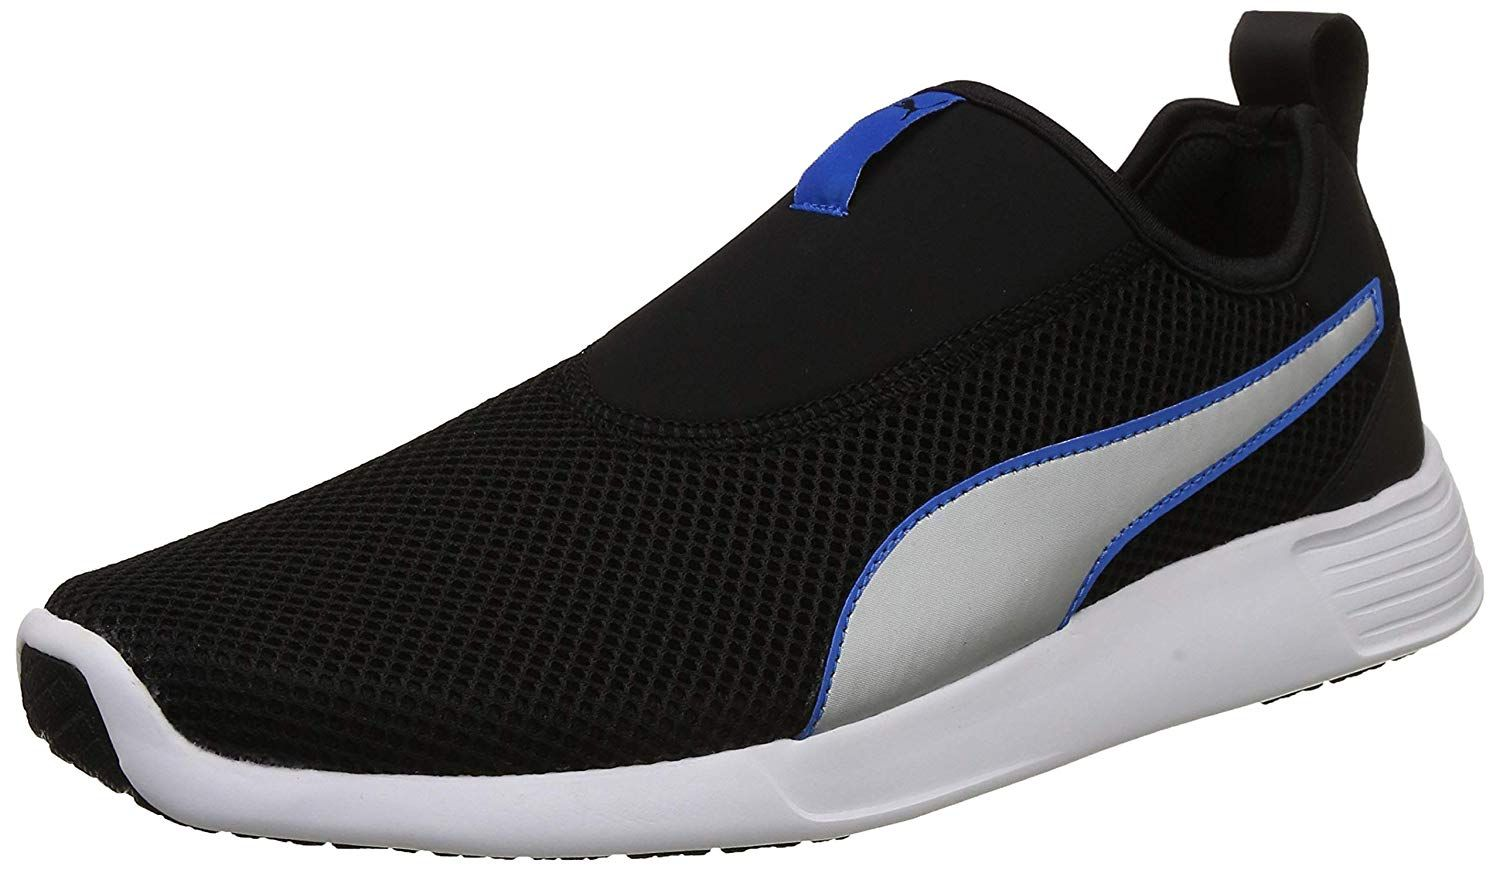 Puma Men S Sneakers Buy Online At Low Prices In India Amazon In